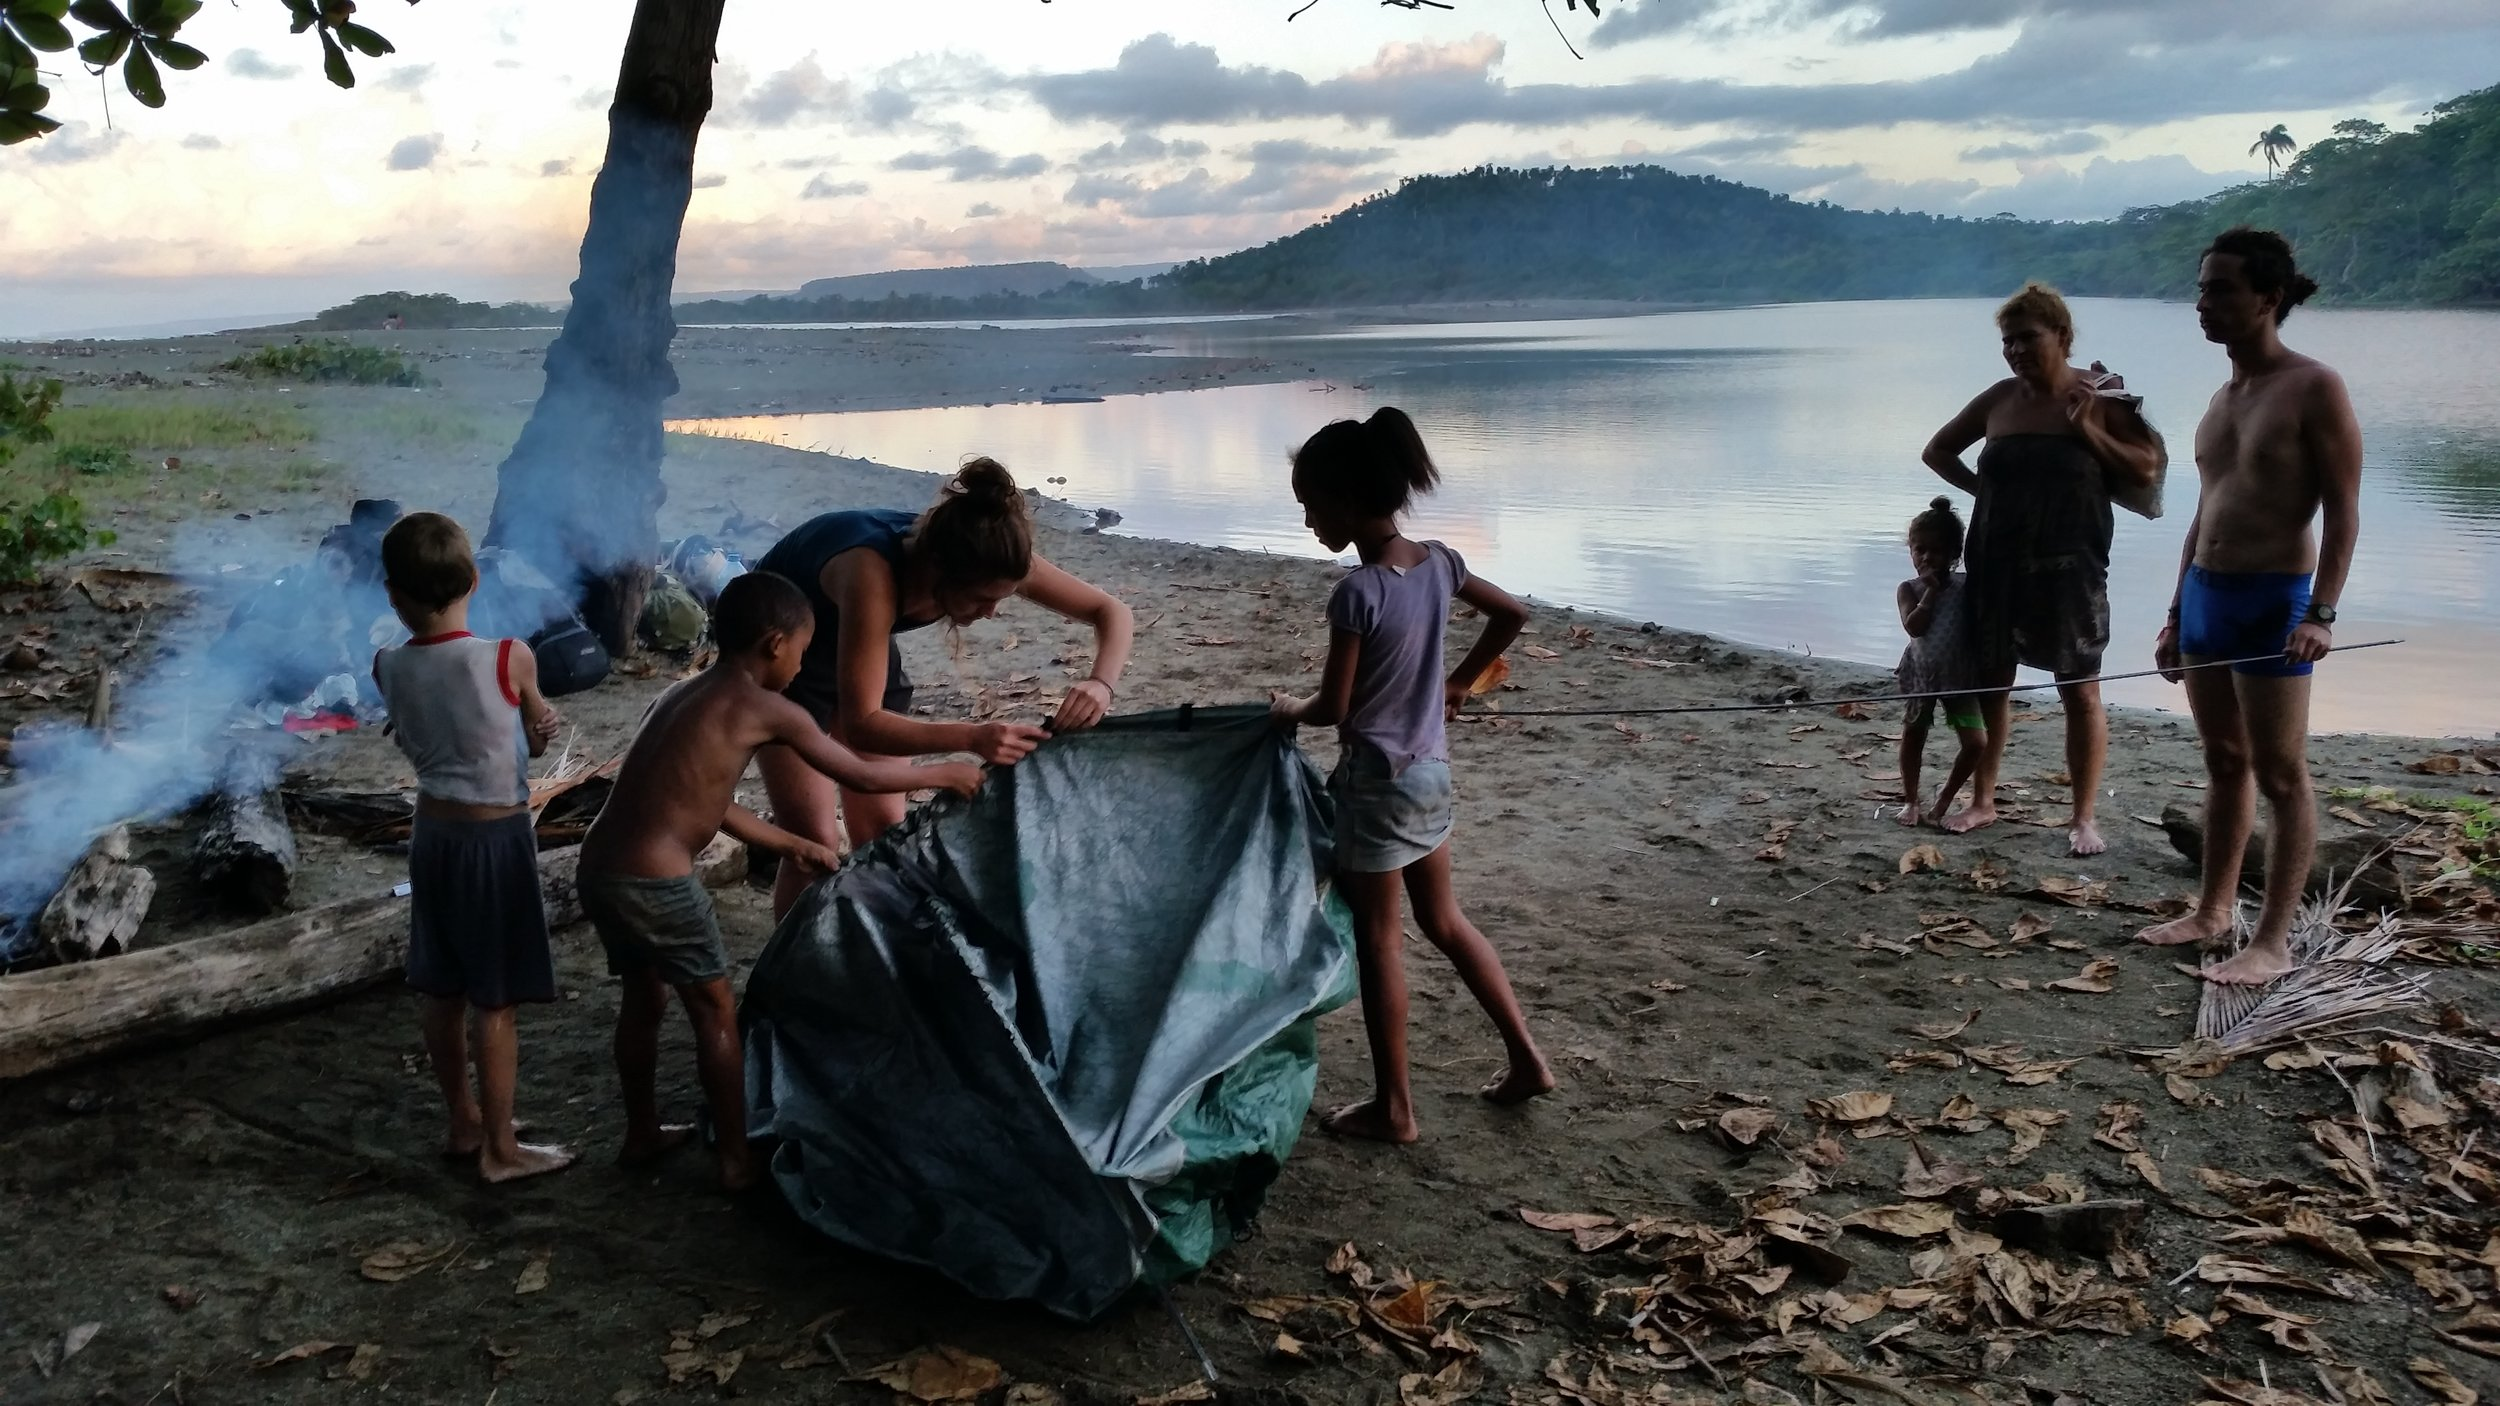 Local kids help us pitch our tent